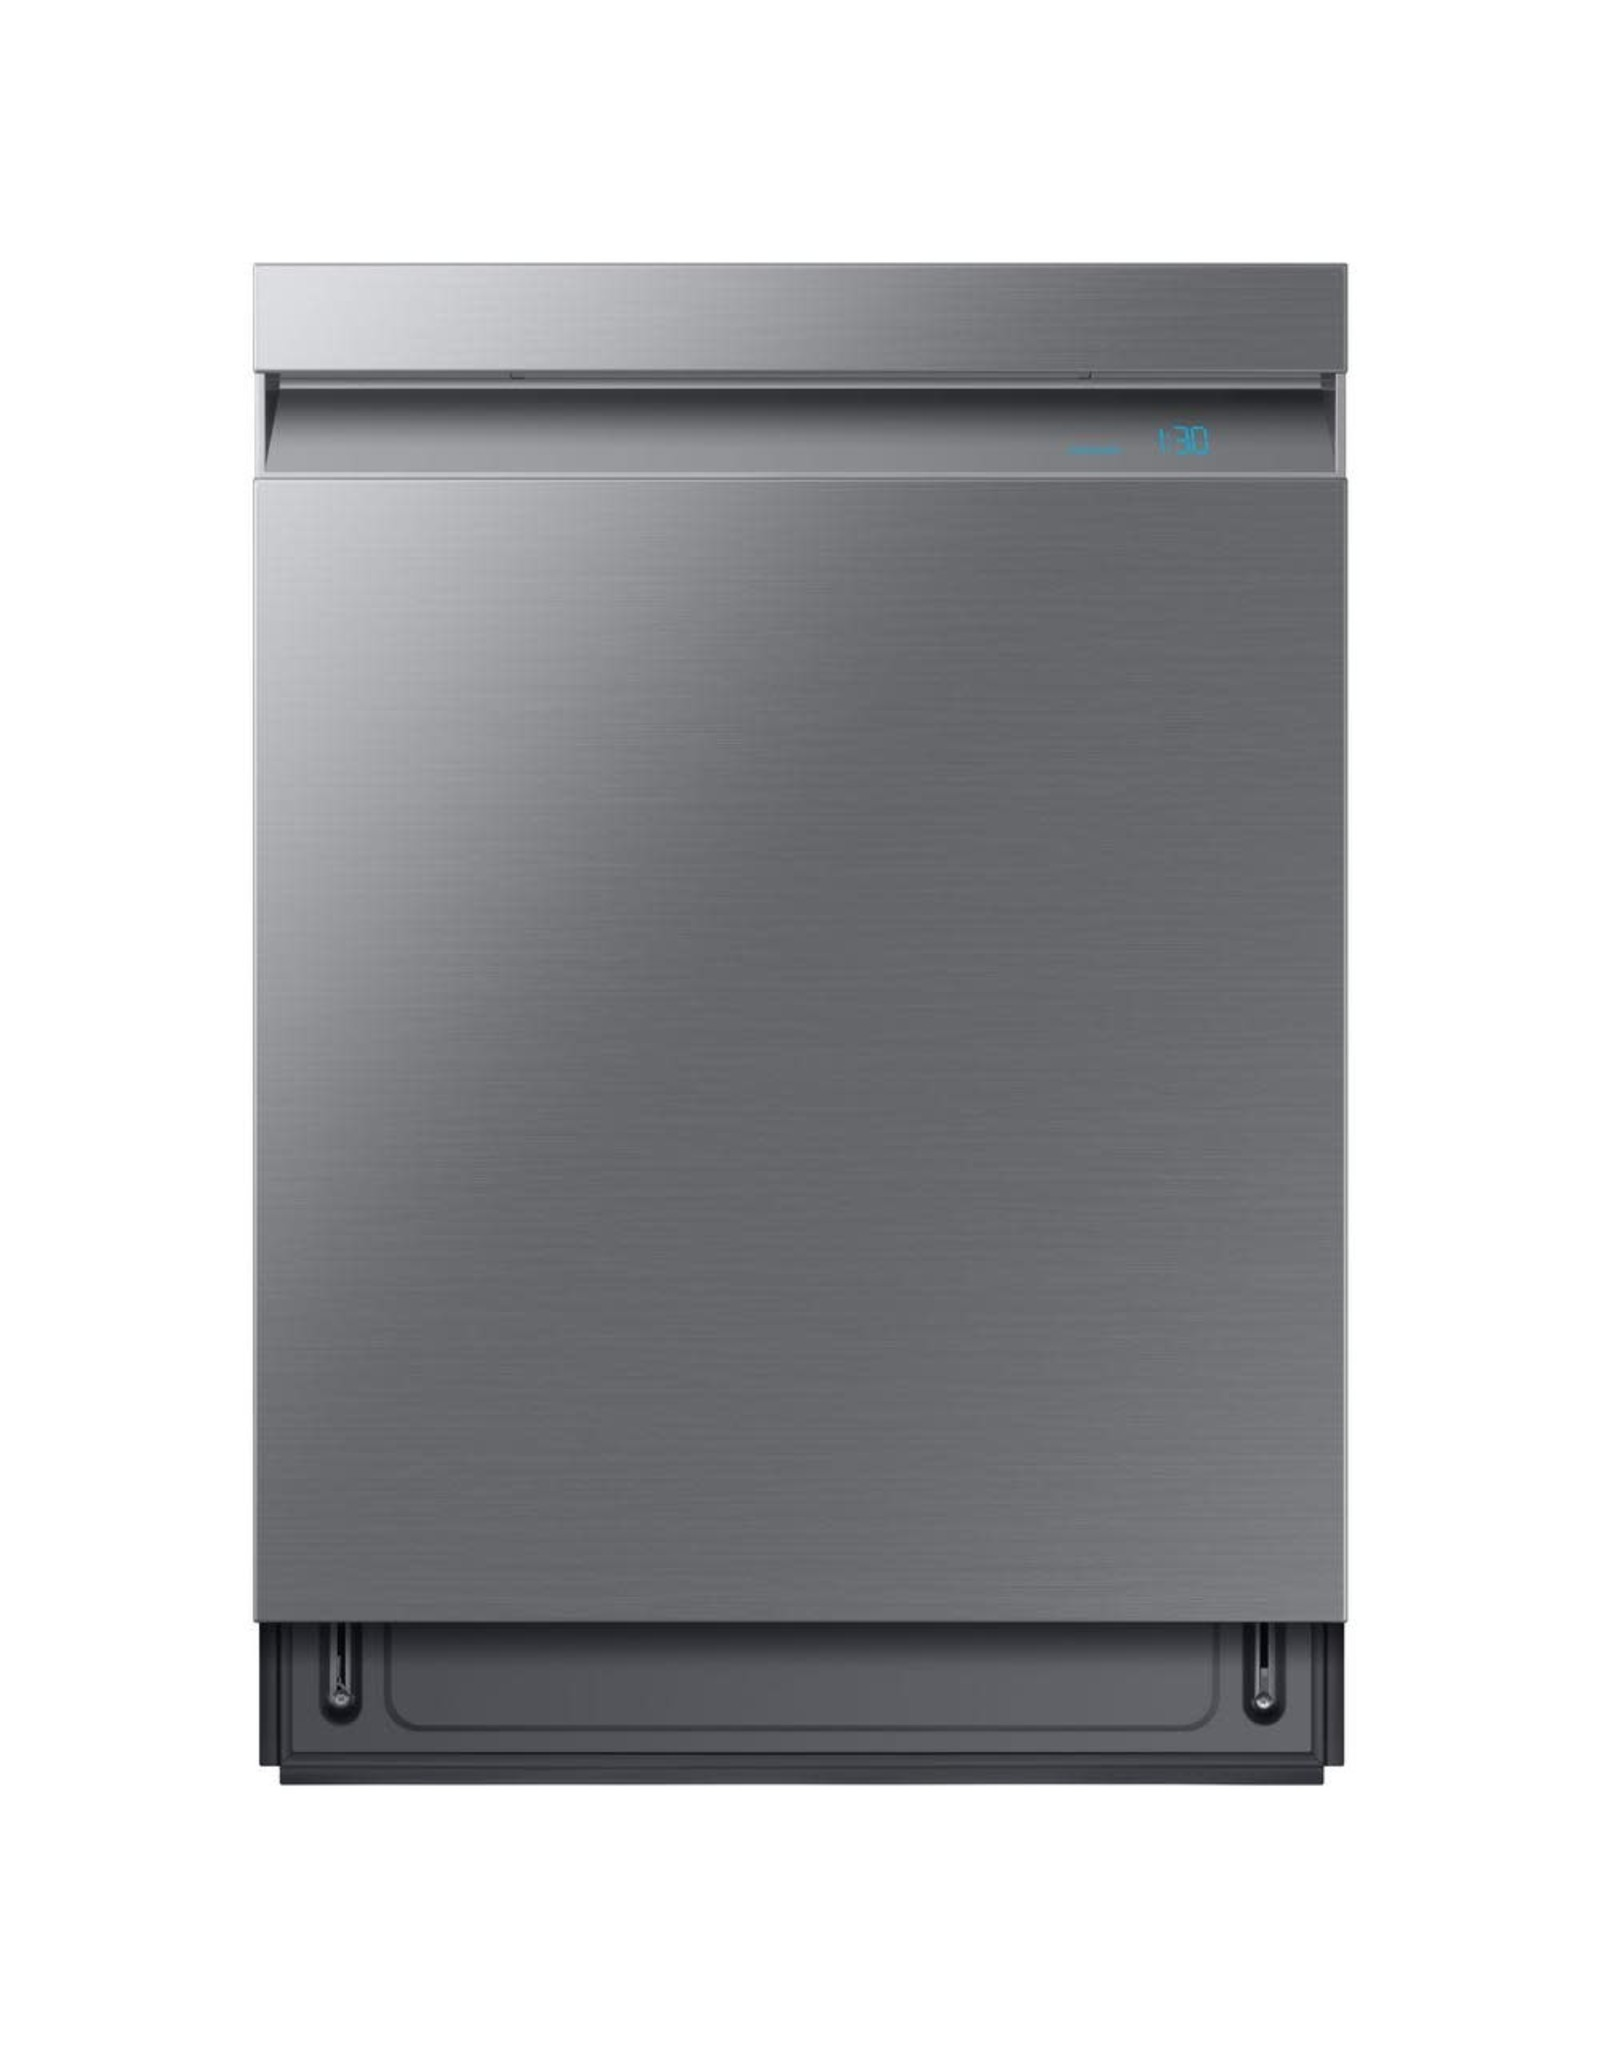 SAMSUNG DW80R9950US Samsung 24 in. Top Control Tall Tub Linear Wash Dishwasher in Fingerprint Resistant Stainless, 3rd Rack, AutoRelease, 39 dBA